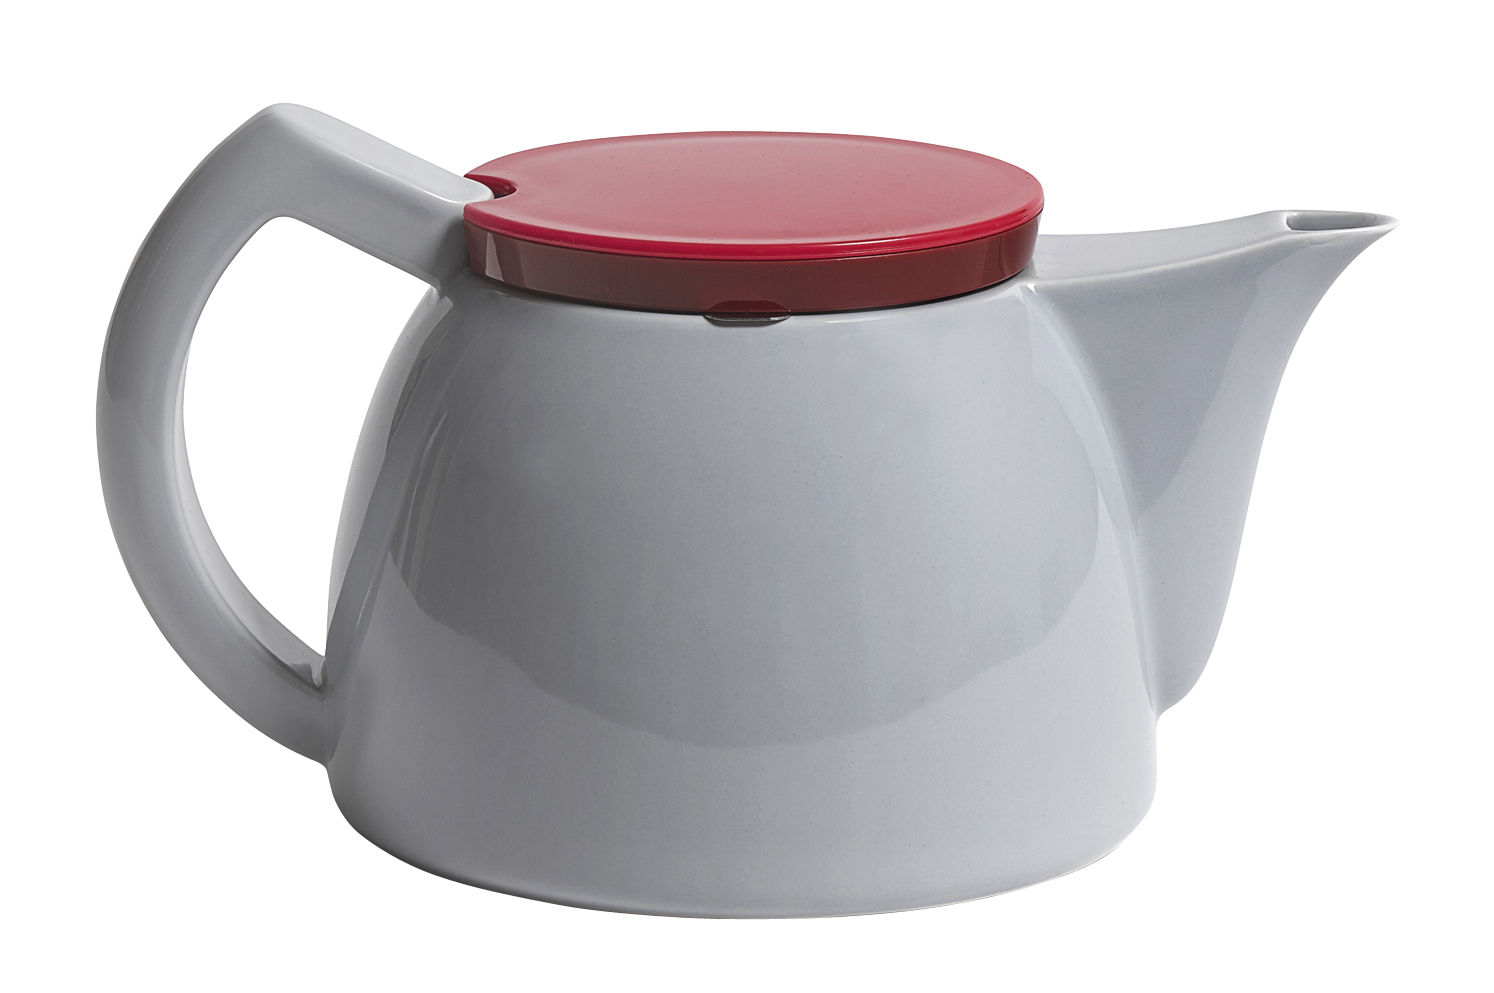 Kitchenware - Kettles & Teapots - Teapot - / 1 l - Steel tea filter by Hay - Grey & red - China, Plastic, Stainless steel